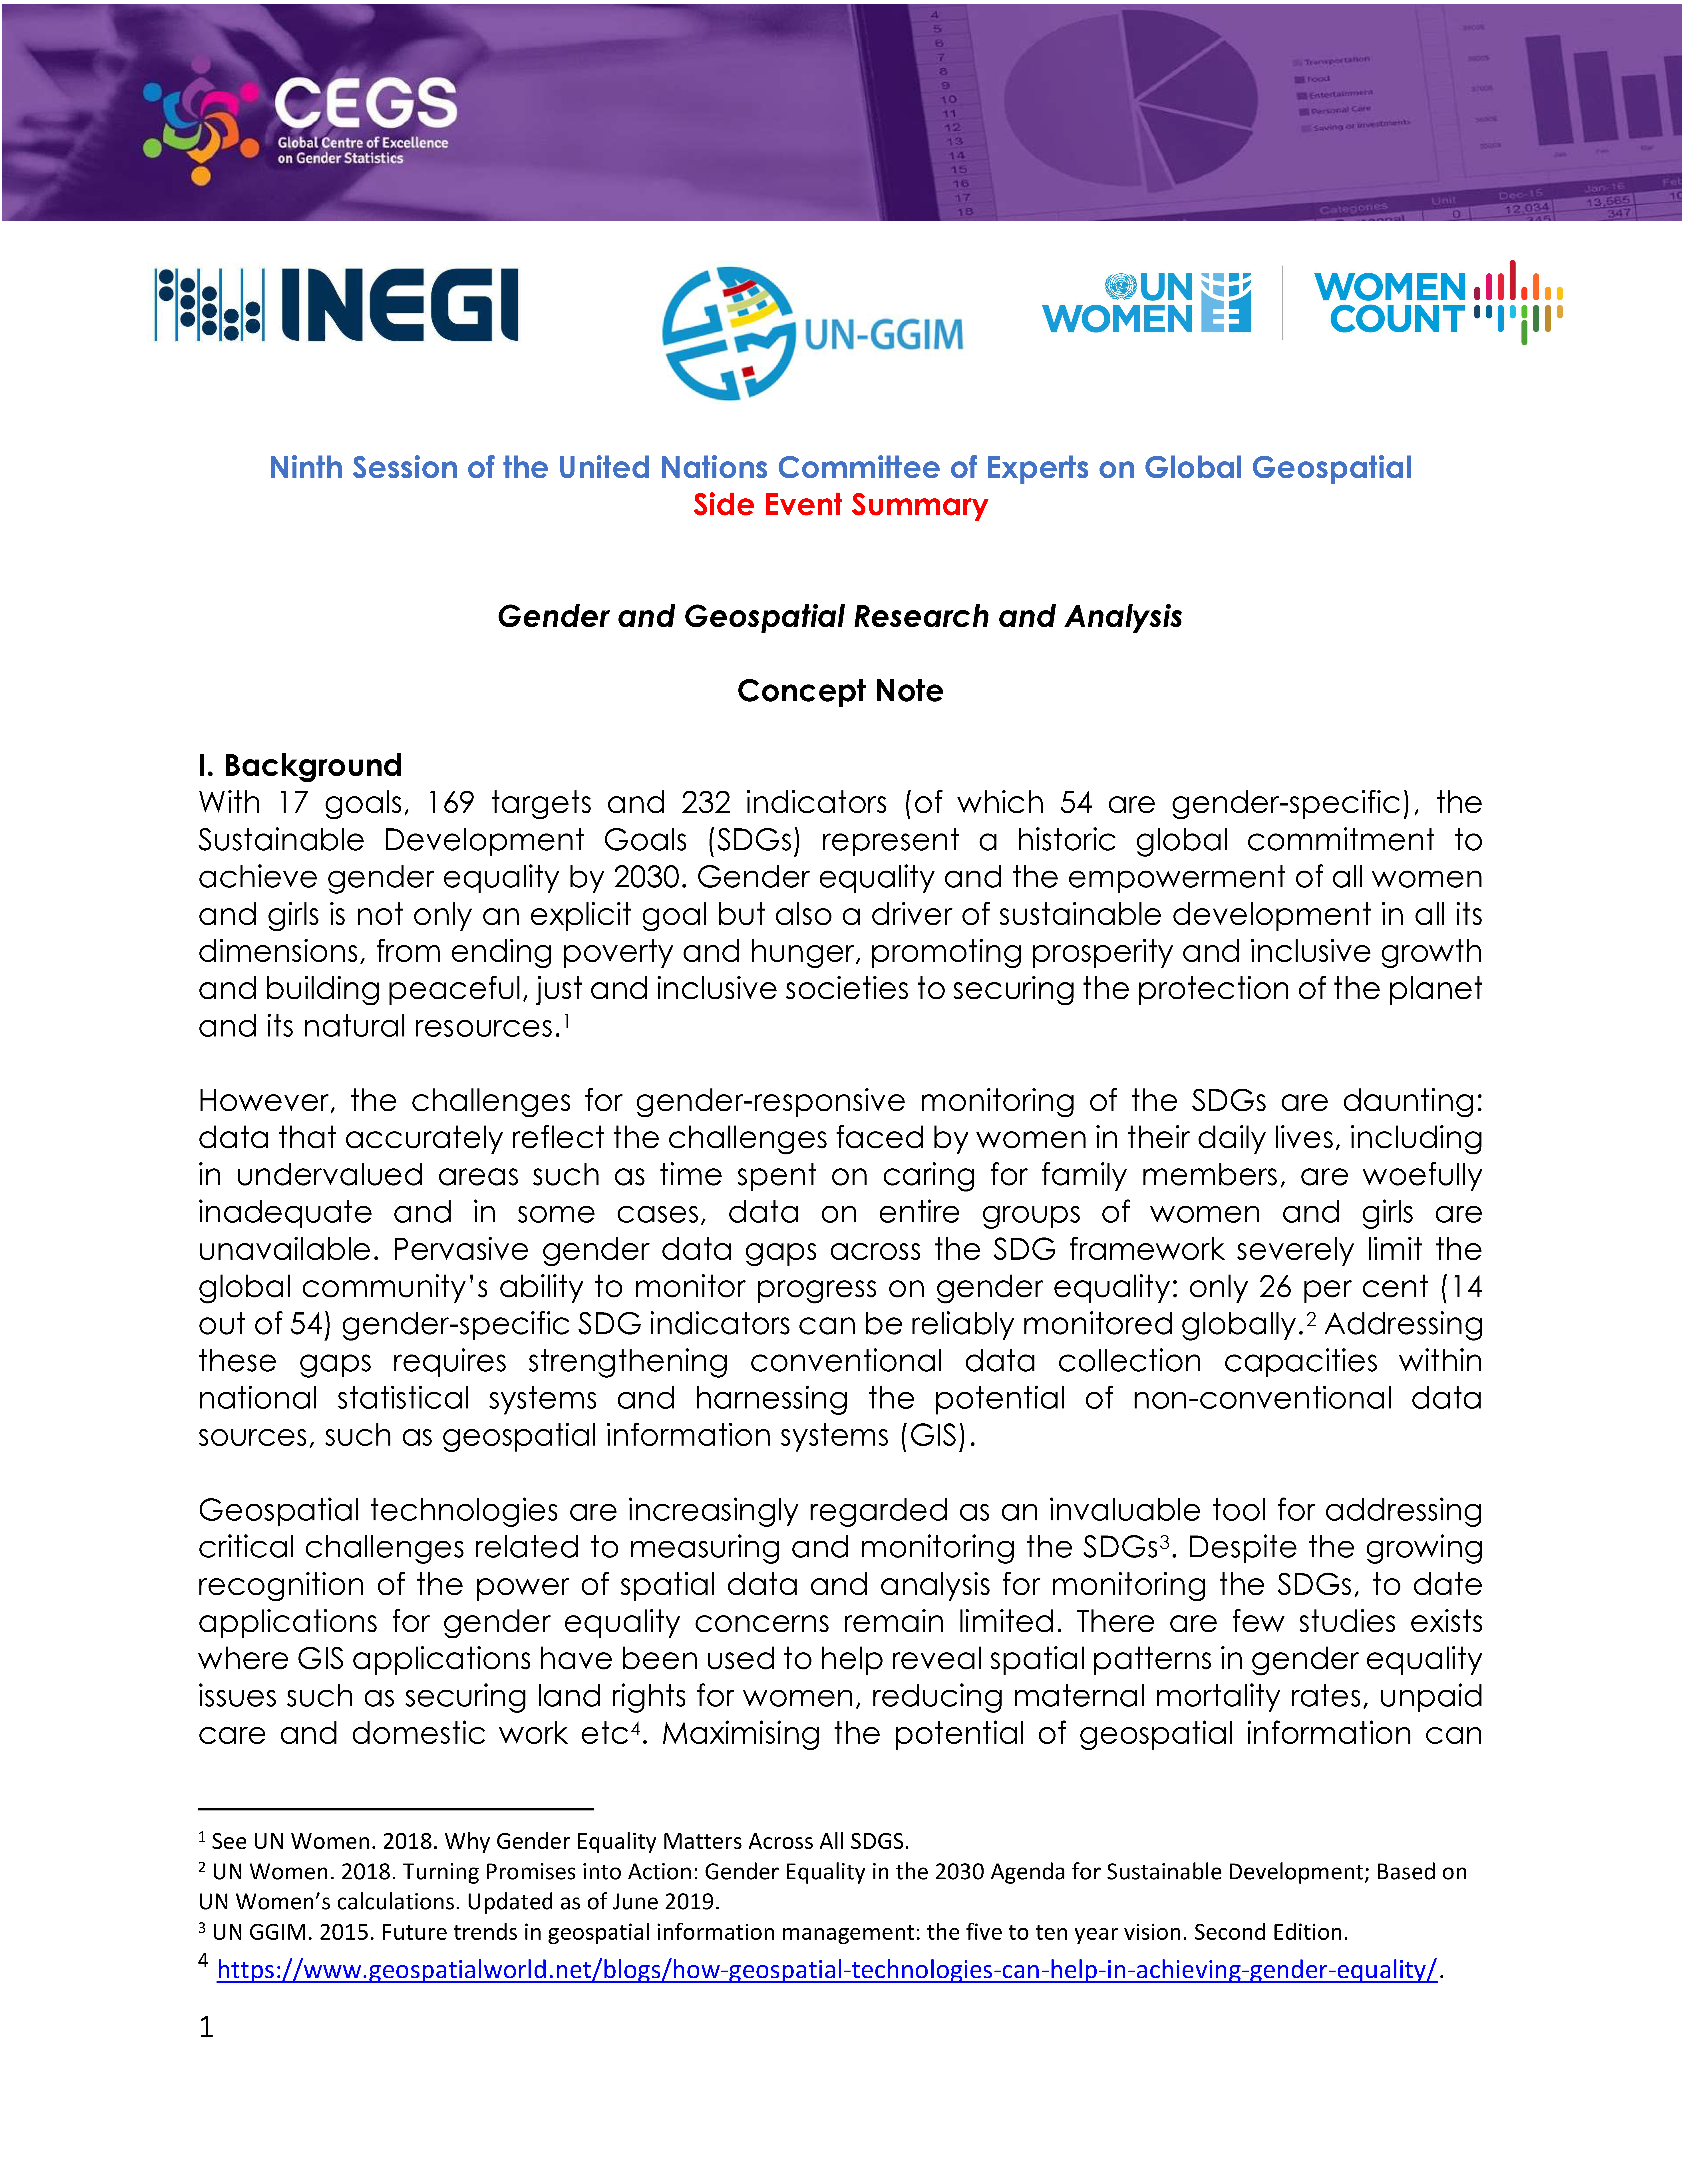 UN-GGIM Side Event Summary: Gender and Geospatial Research and Analysis